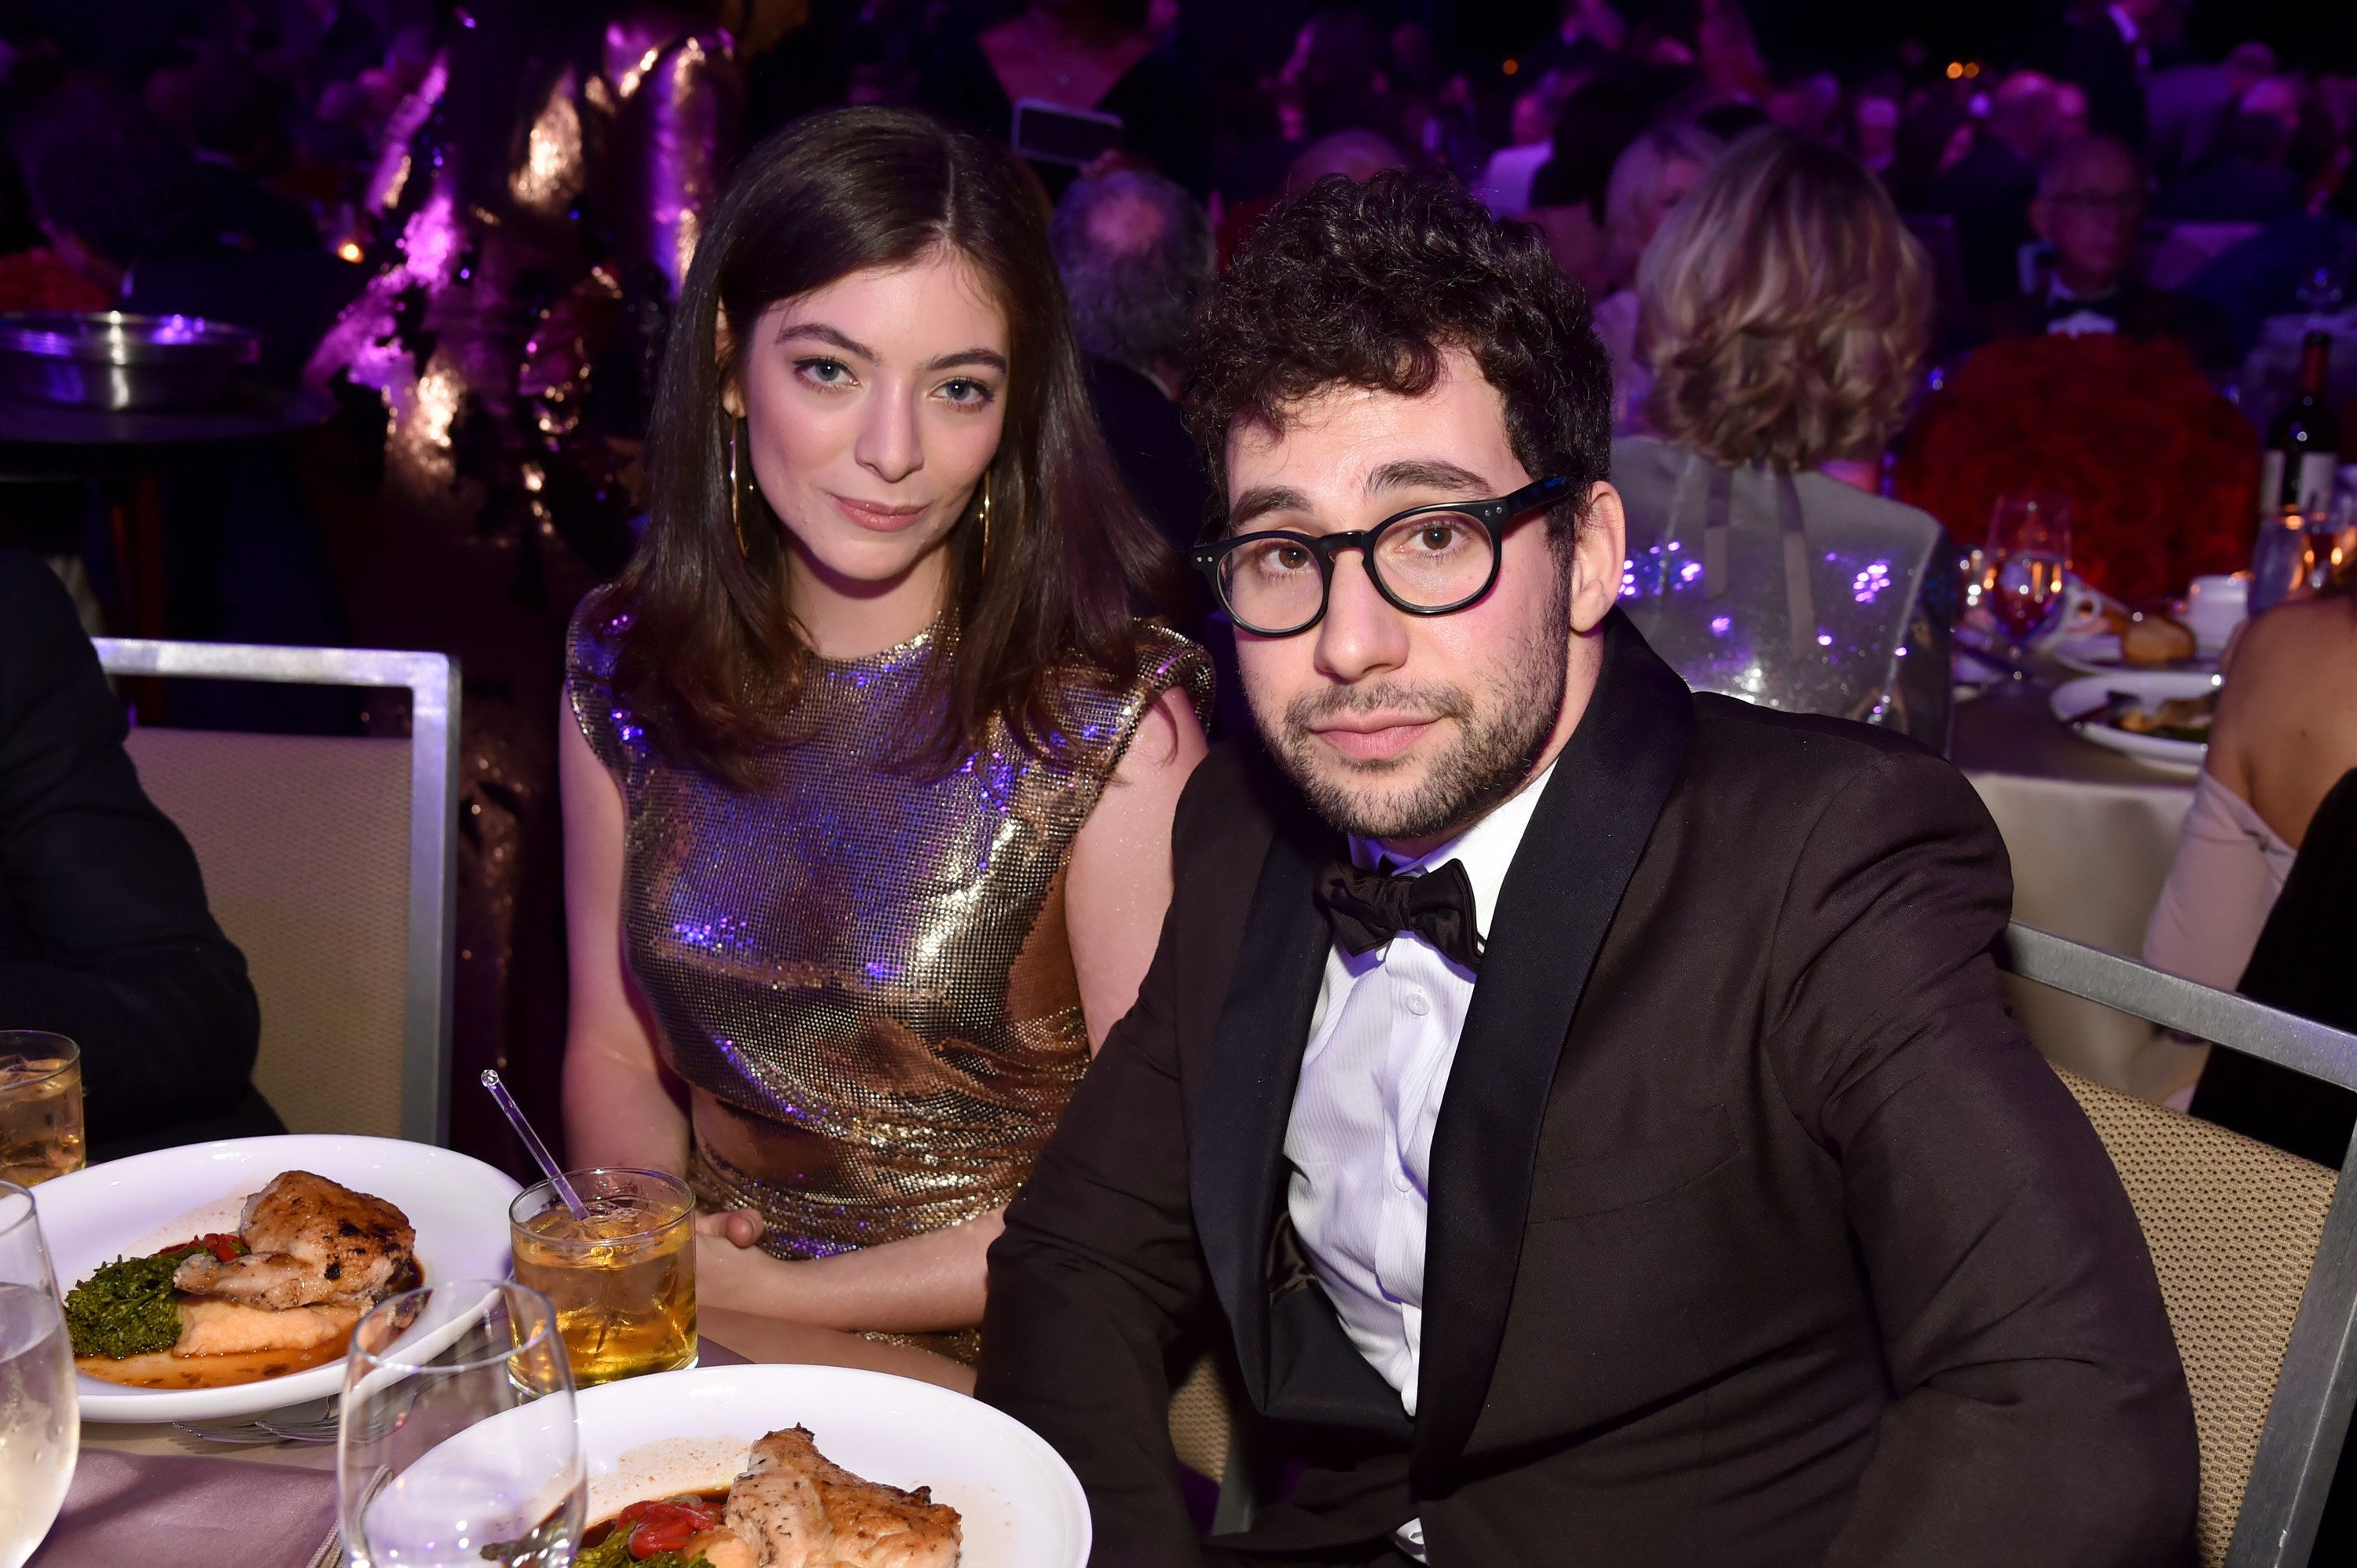 NEW YORK, NY - JANUARY 27:  Lorde and Jack Antonoff attend the Clive Davis and Recording Academy Pre-GRAMMY Gala and GRAMMY Salute to Industry Icons Honoring Jay-Z on January 27, 2018 in New York City.  (Photo by Kevin Mazur/Getty Images for NARAS)